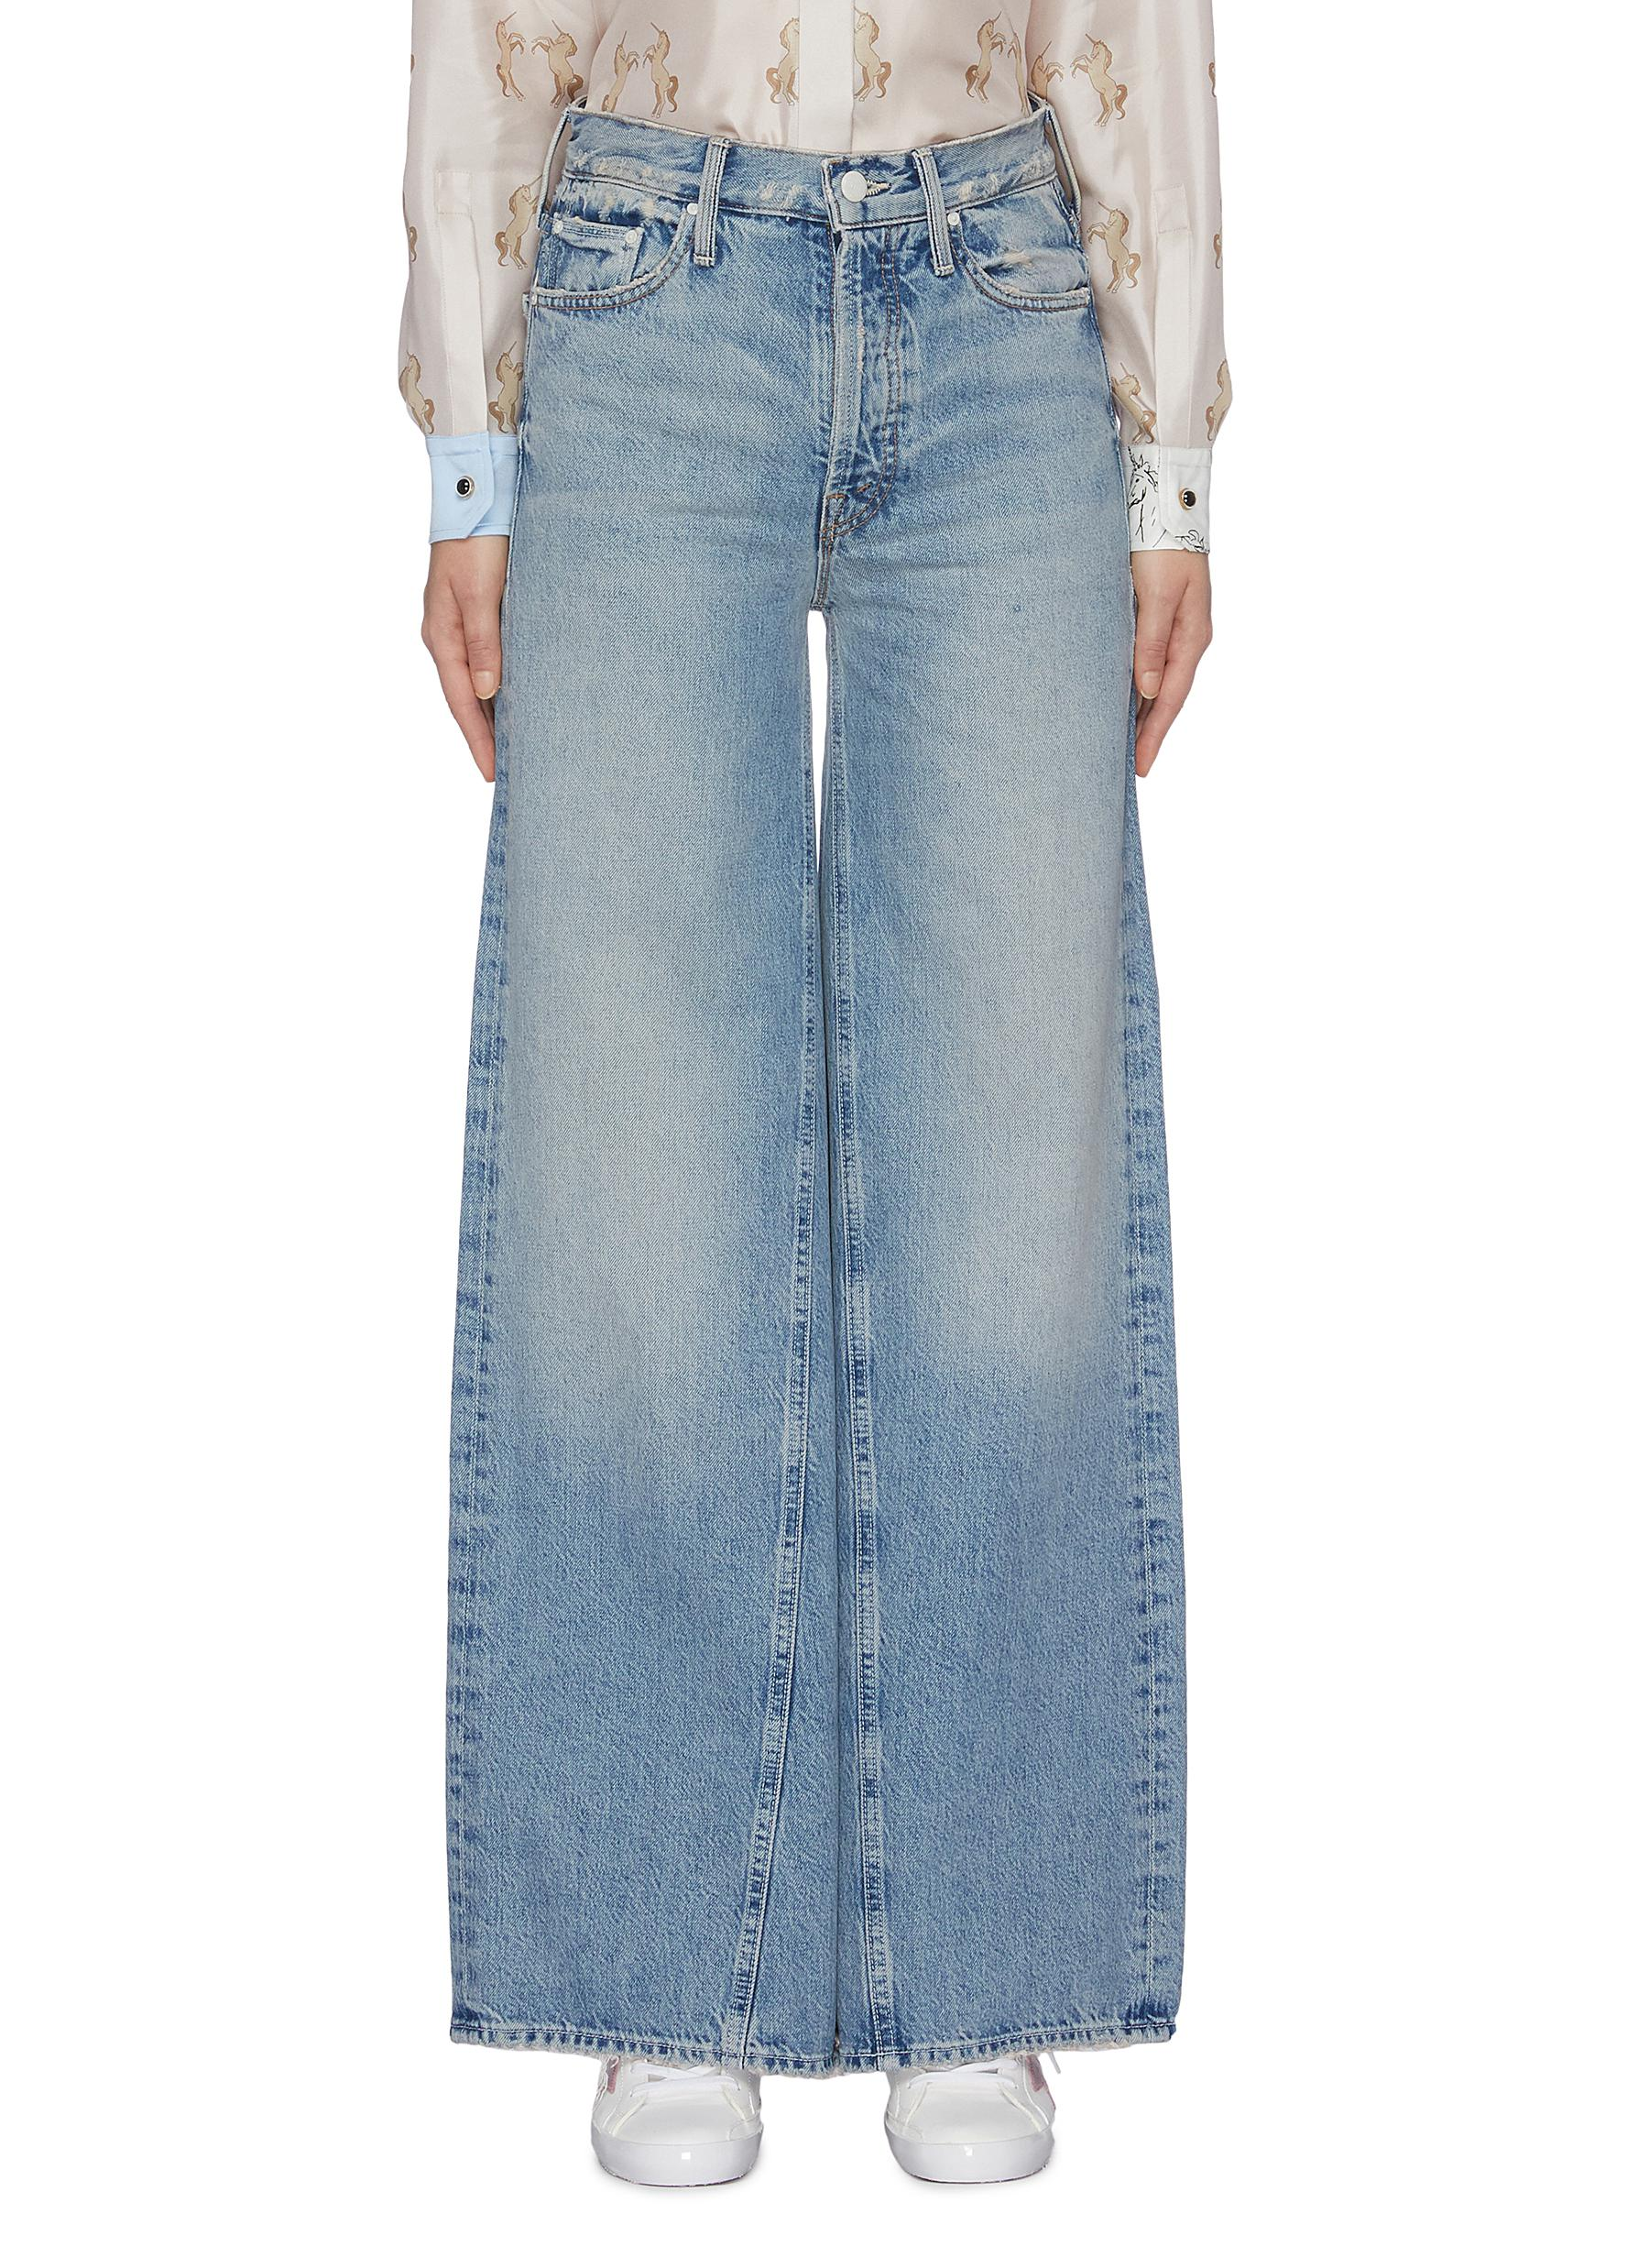 The Enchanter oversized wide leg jeans by Mother